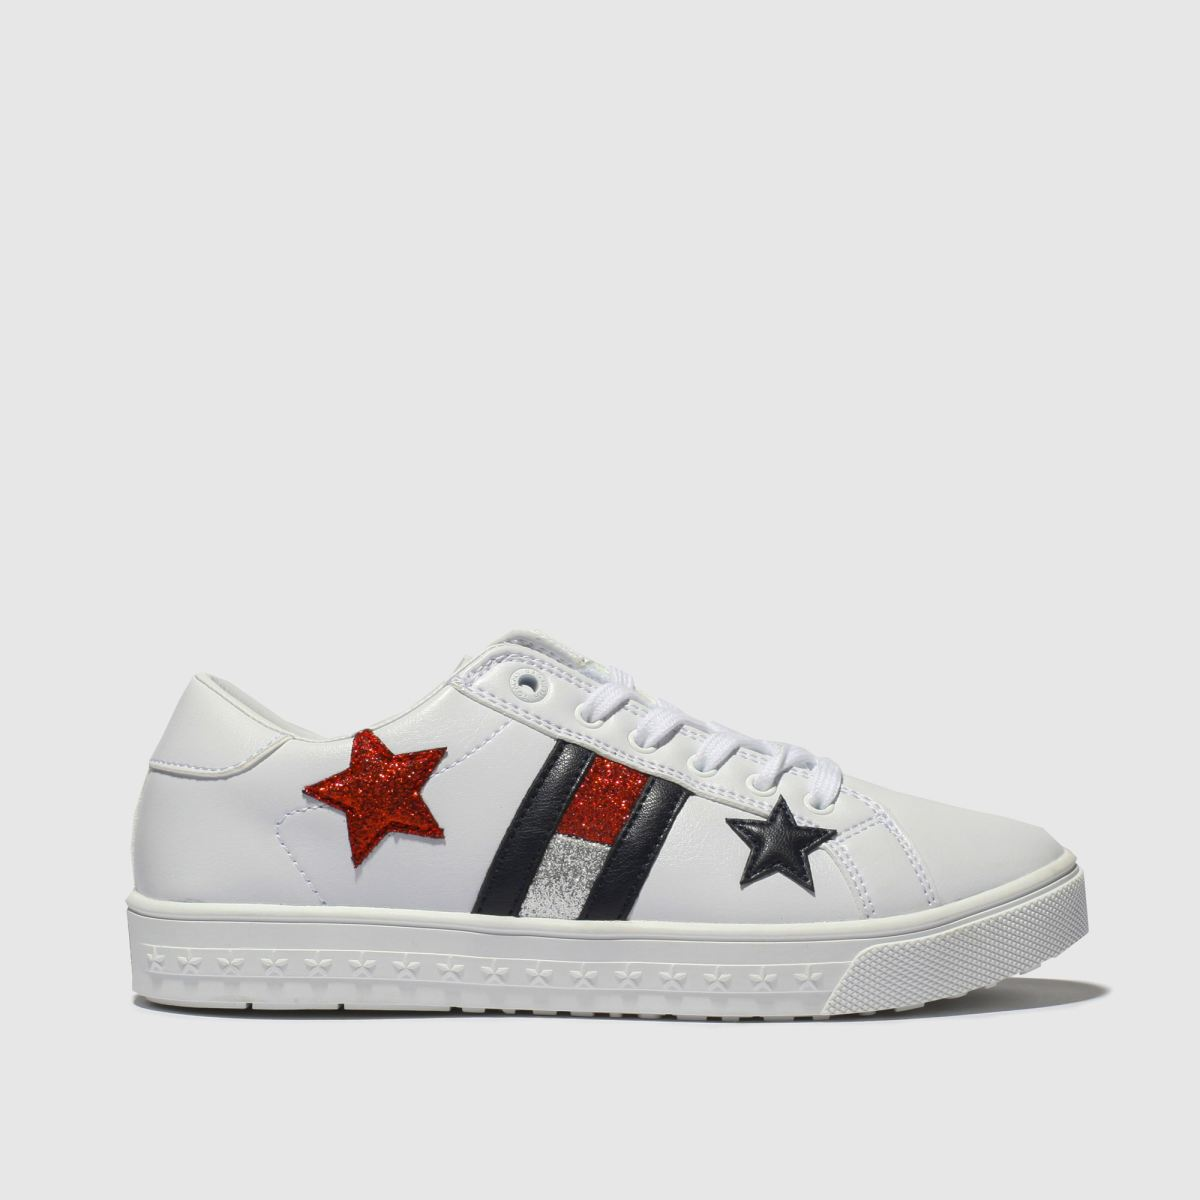 Tommy Hilfiger White & Navy Star Lace Up Sneaker Trainers Youth